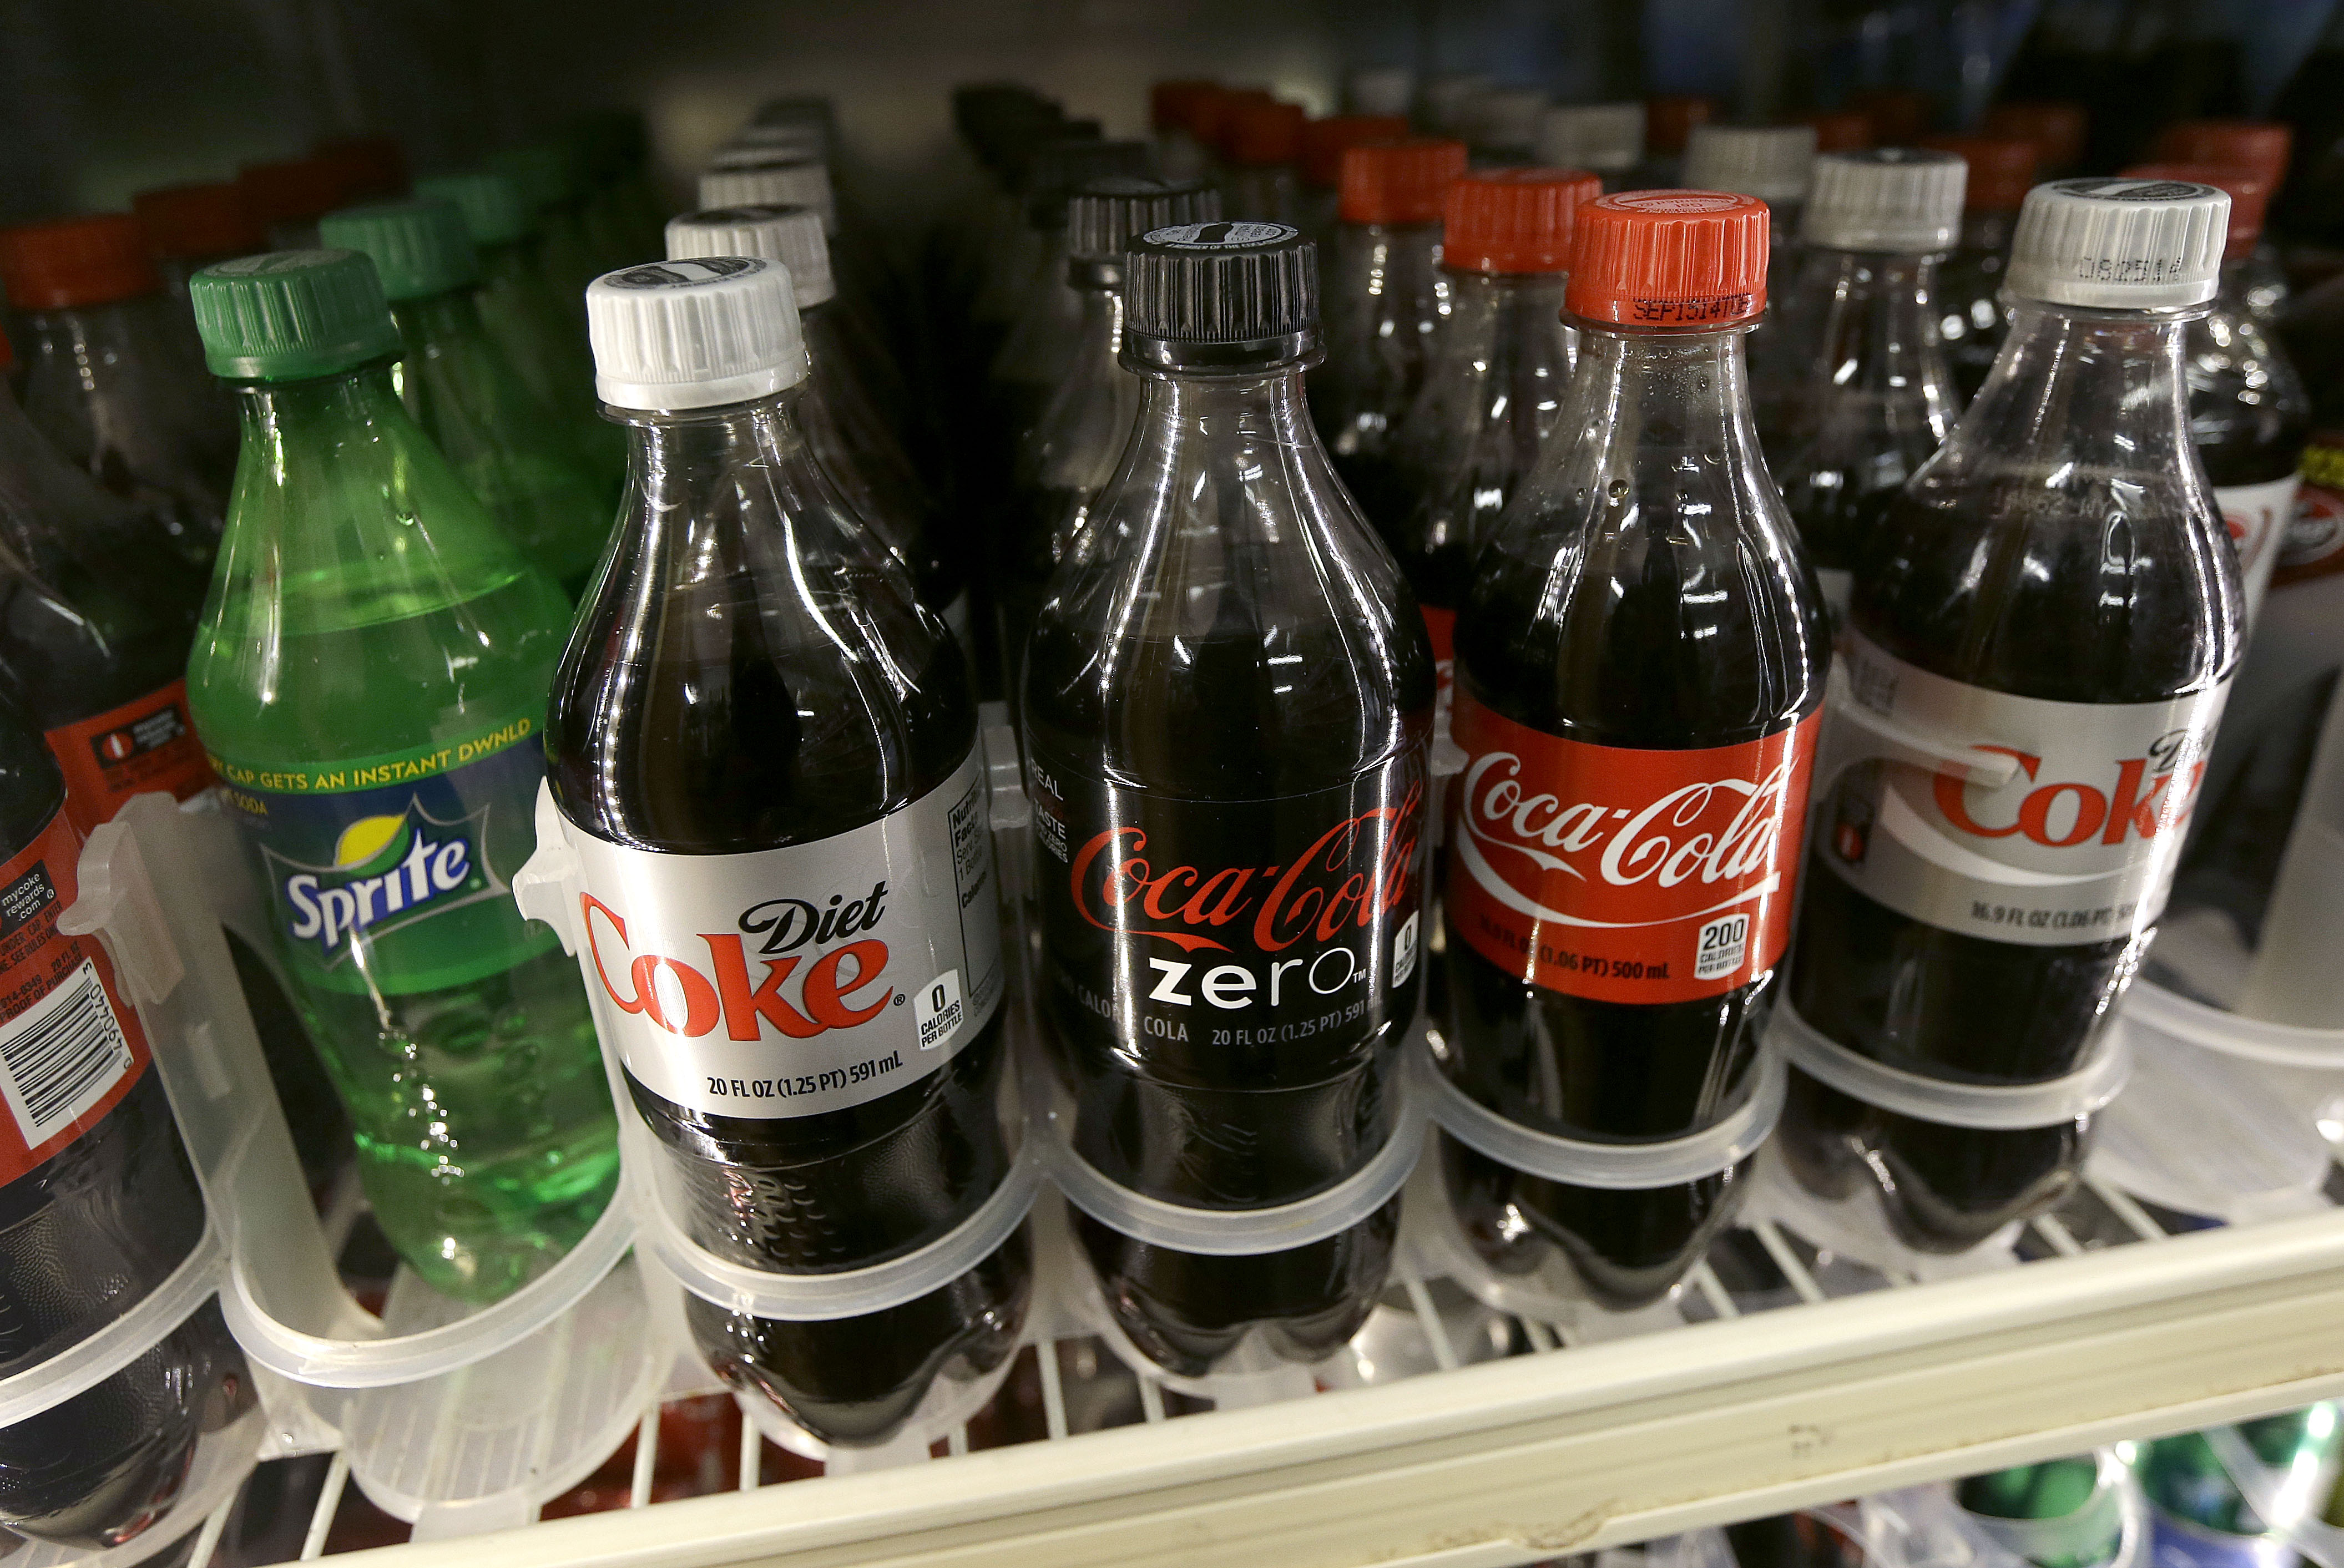 A shelf of soft drinks are shown in a refrigerator at K & D Market in San Francisco, on Oct. 1, 2014.